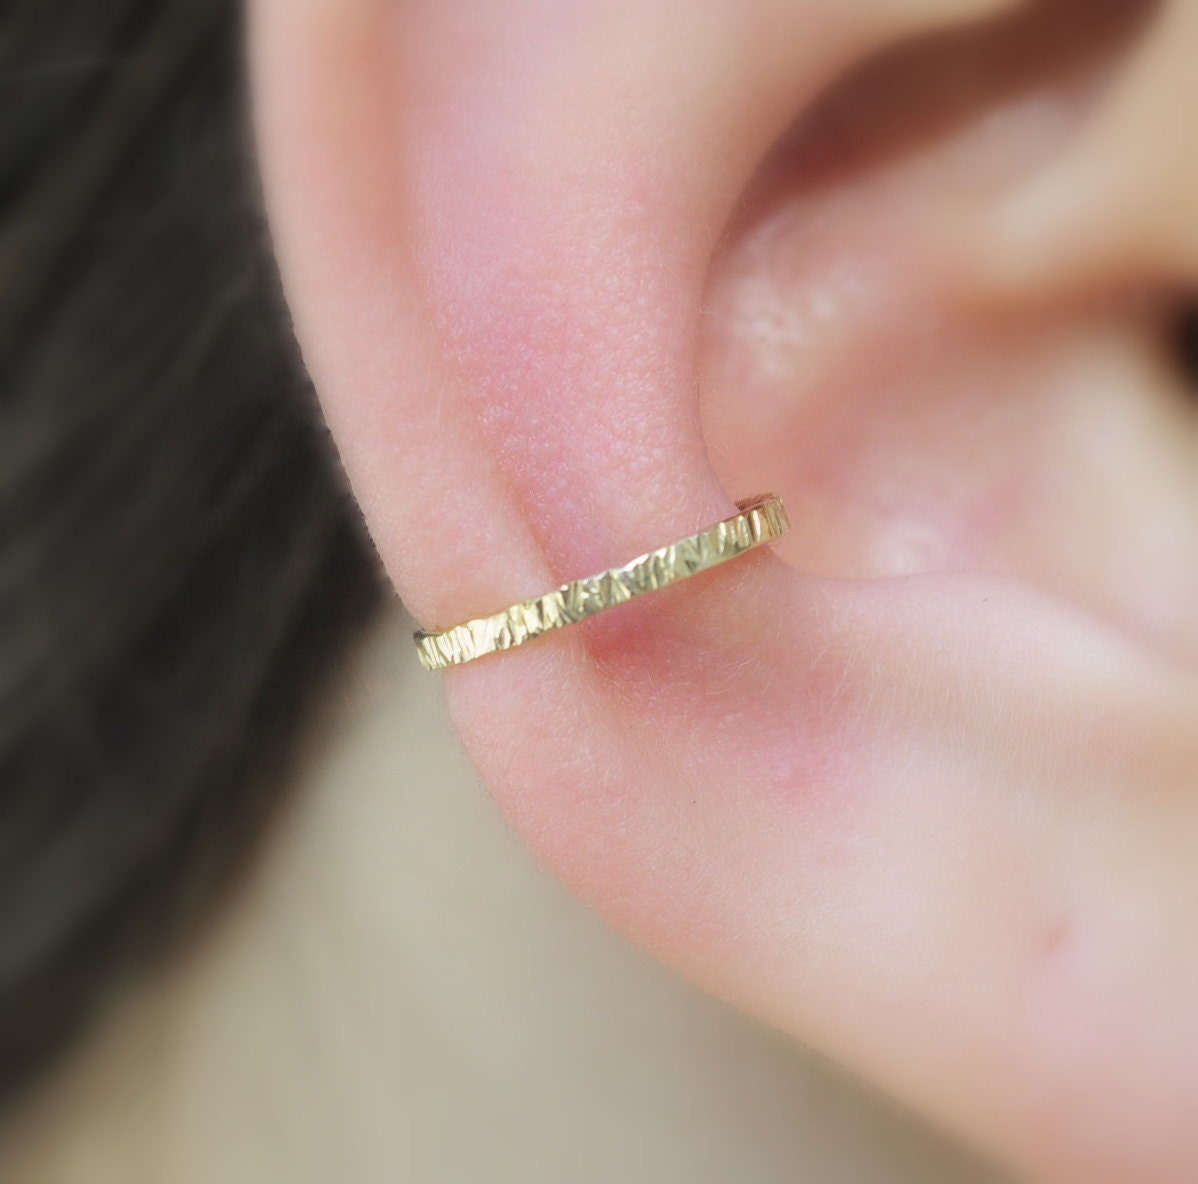 Ear Cuff 14k Solid Yellow Gold Textured 1 2mm Wide